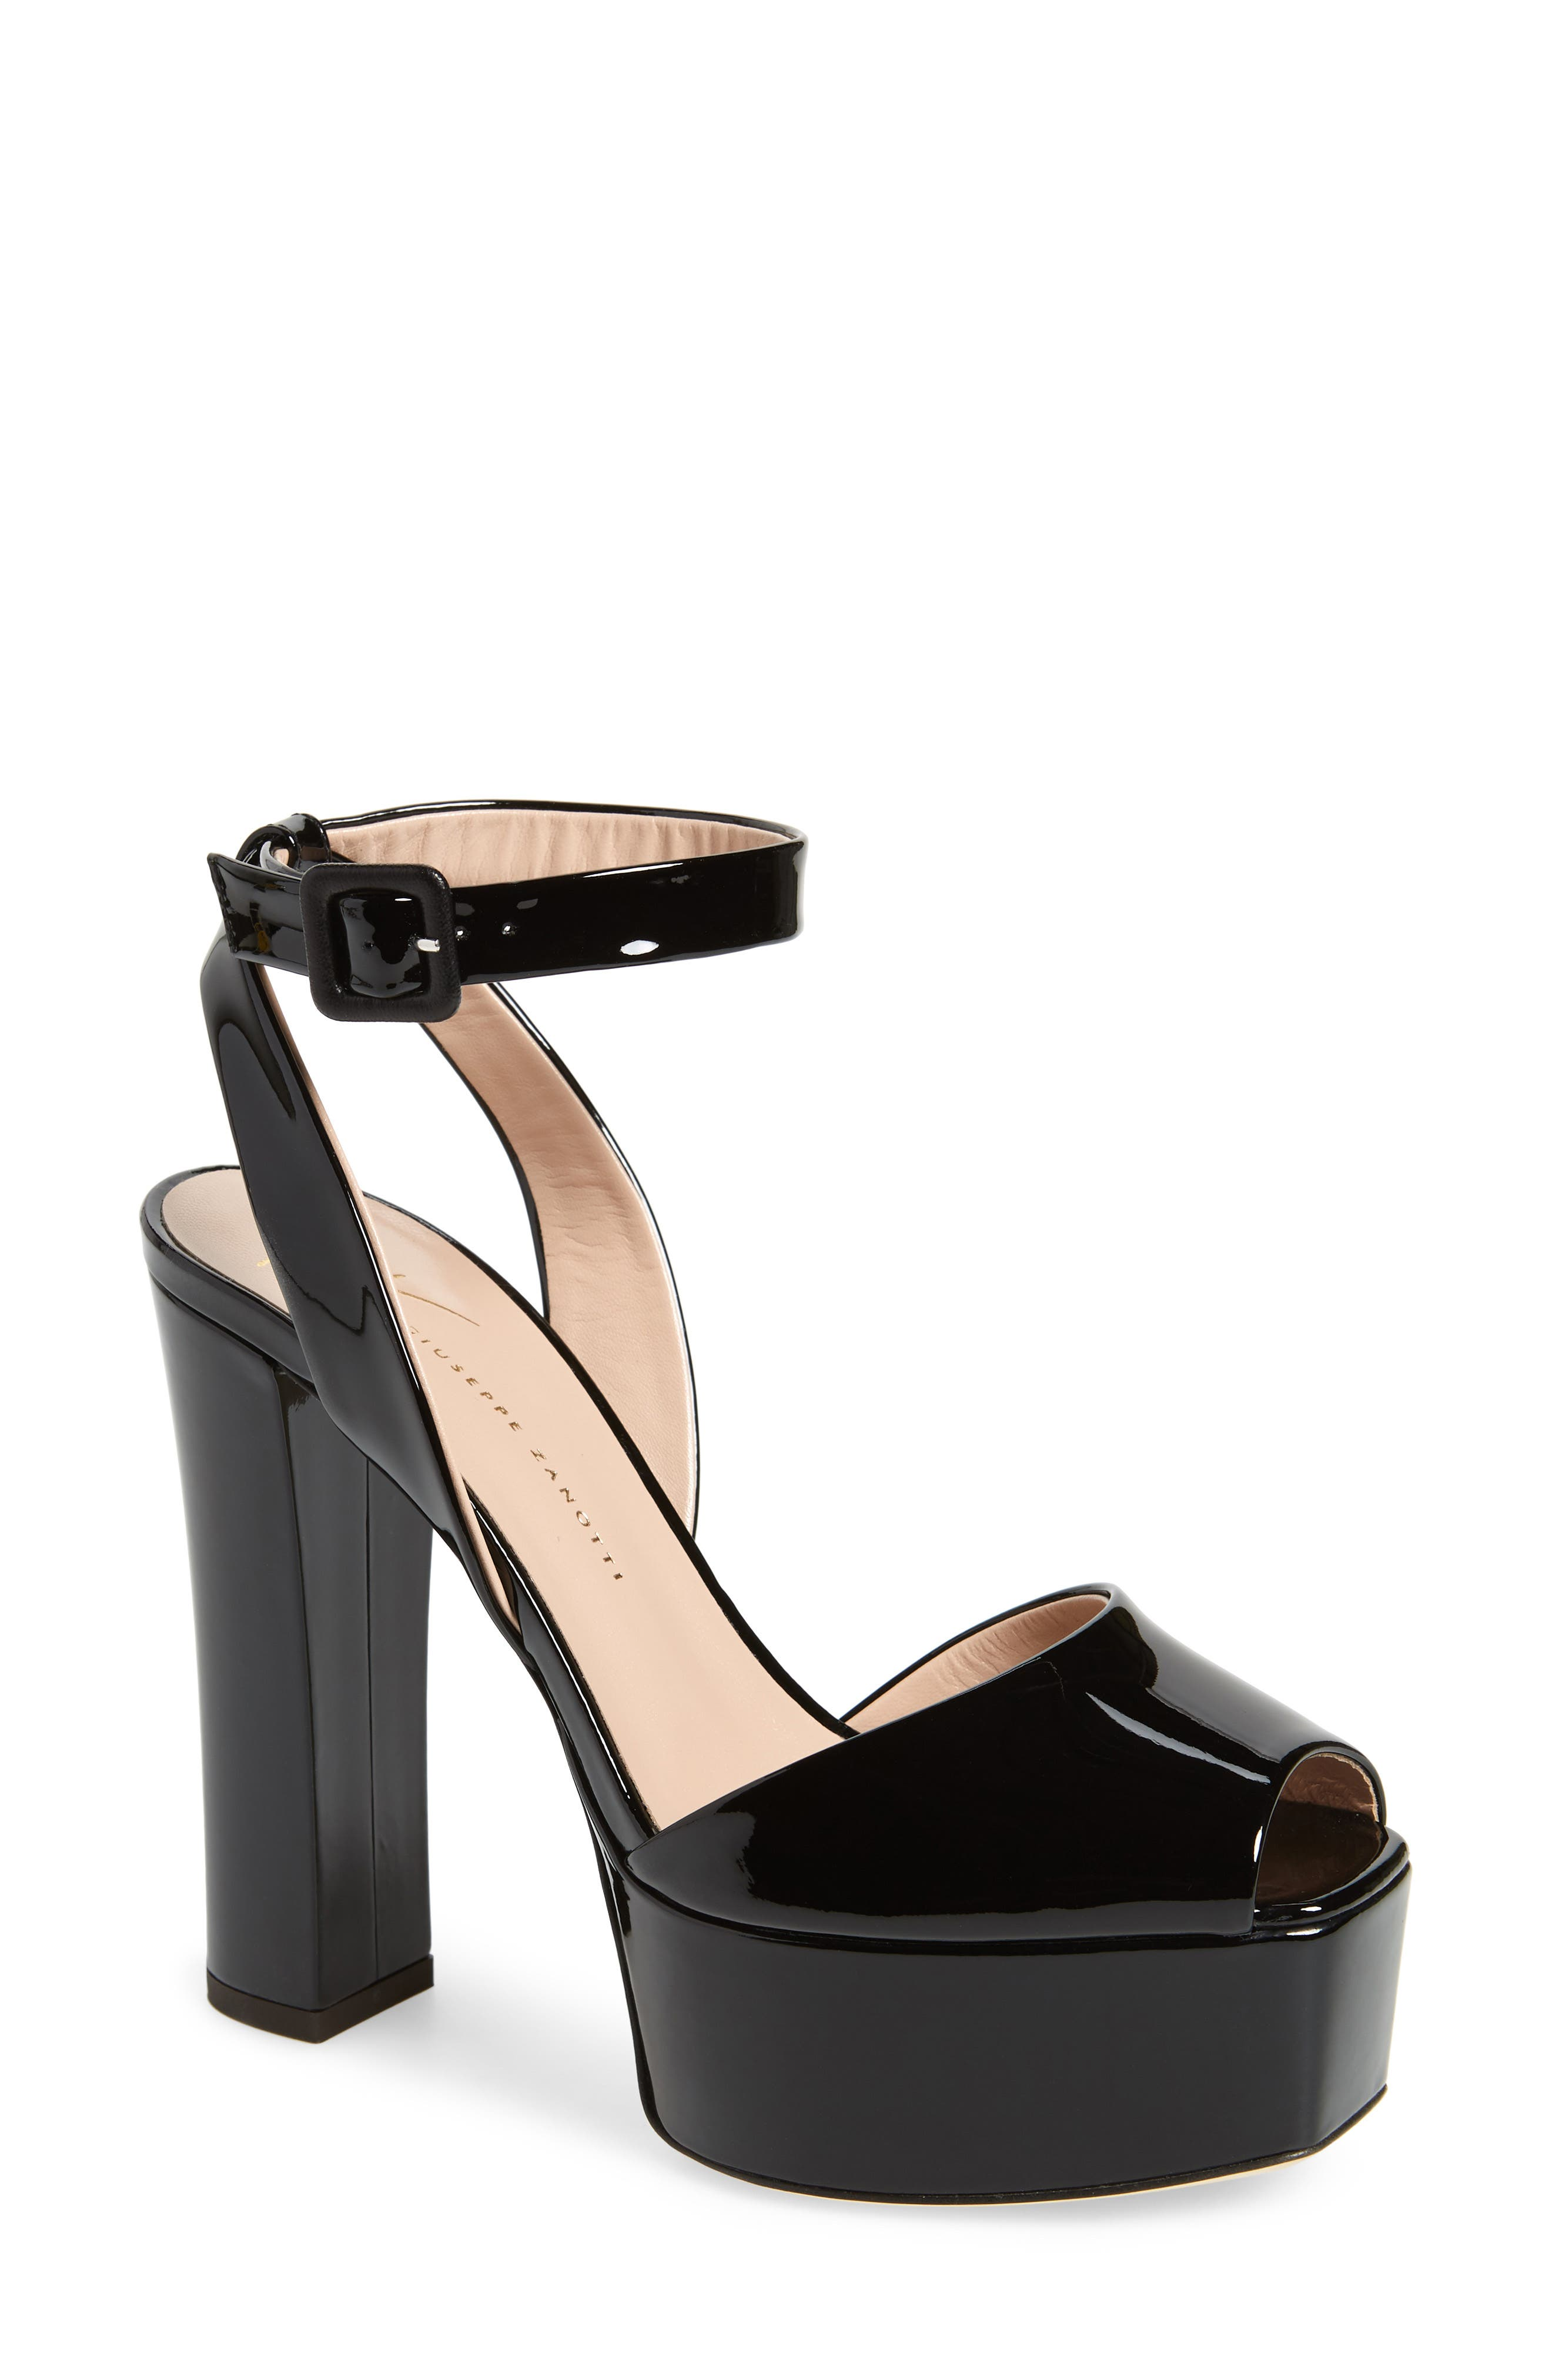 Lavinia Platform Sandal,                         Main,                         color, Black Patent